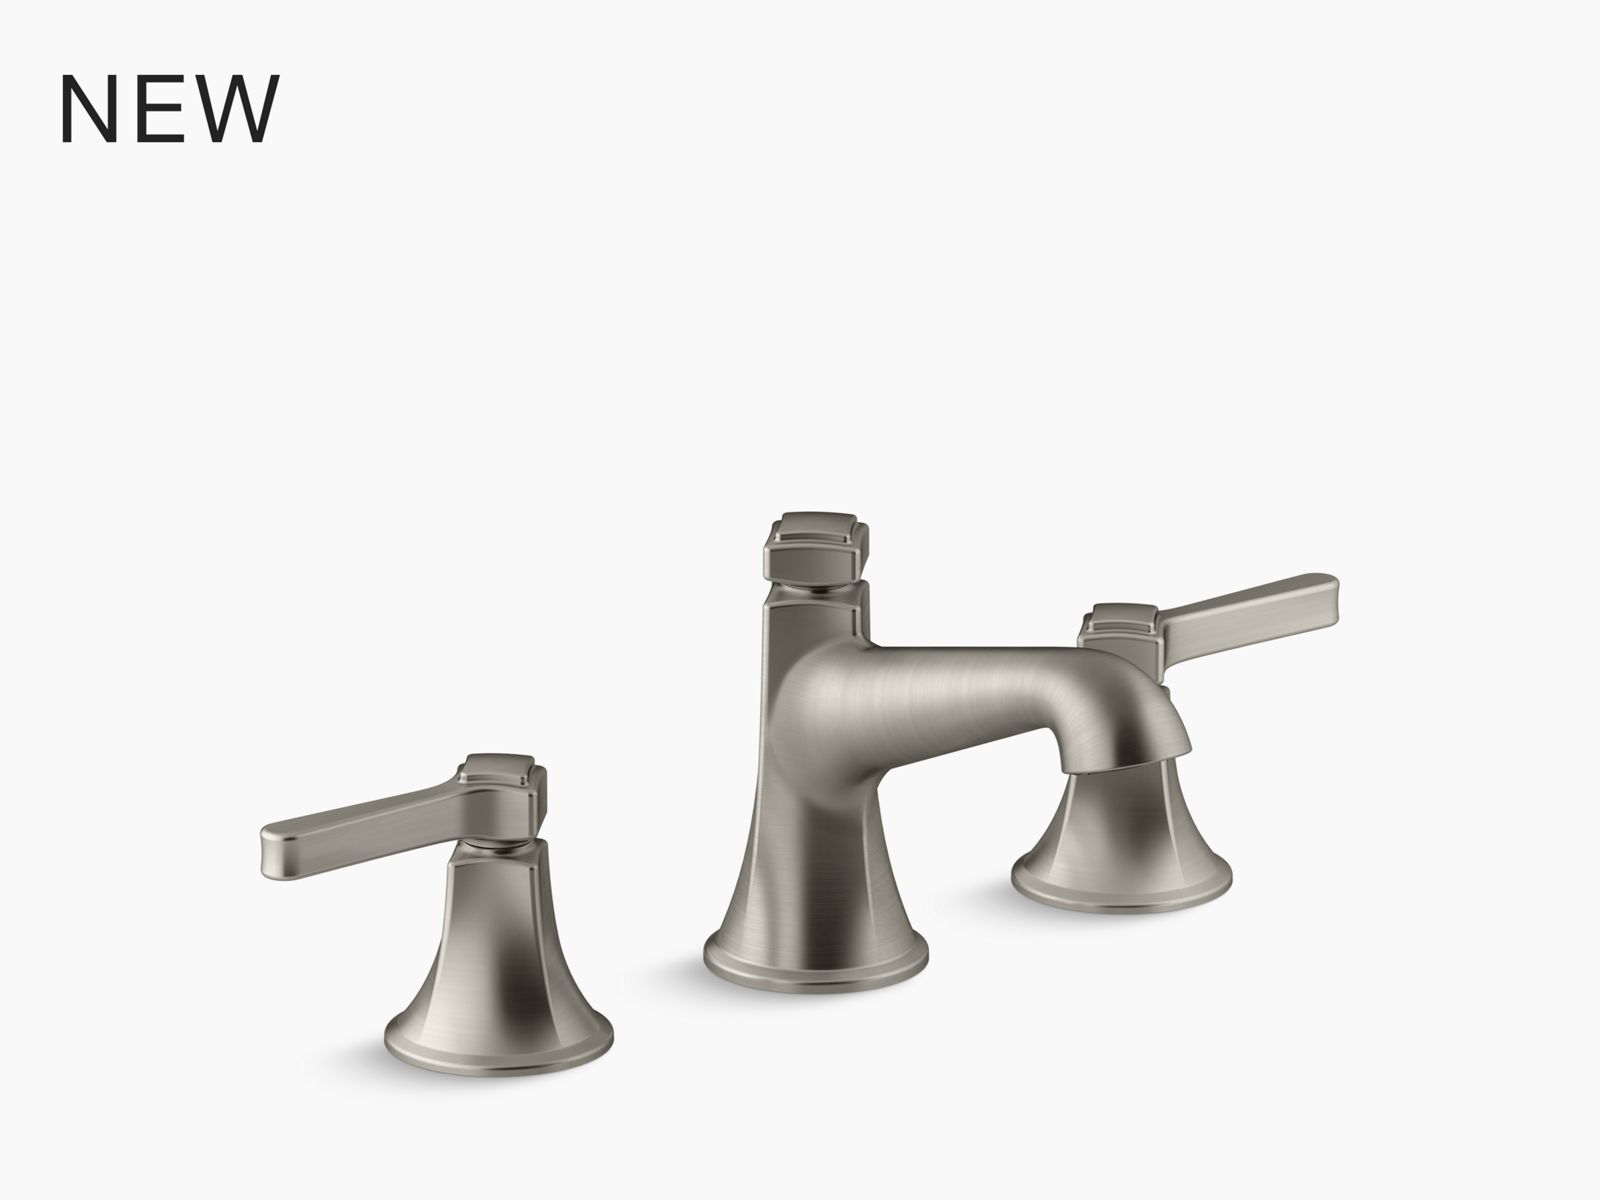 vox rectangle vessel bathroom sink with widespread faucet holes